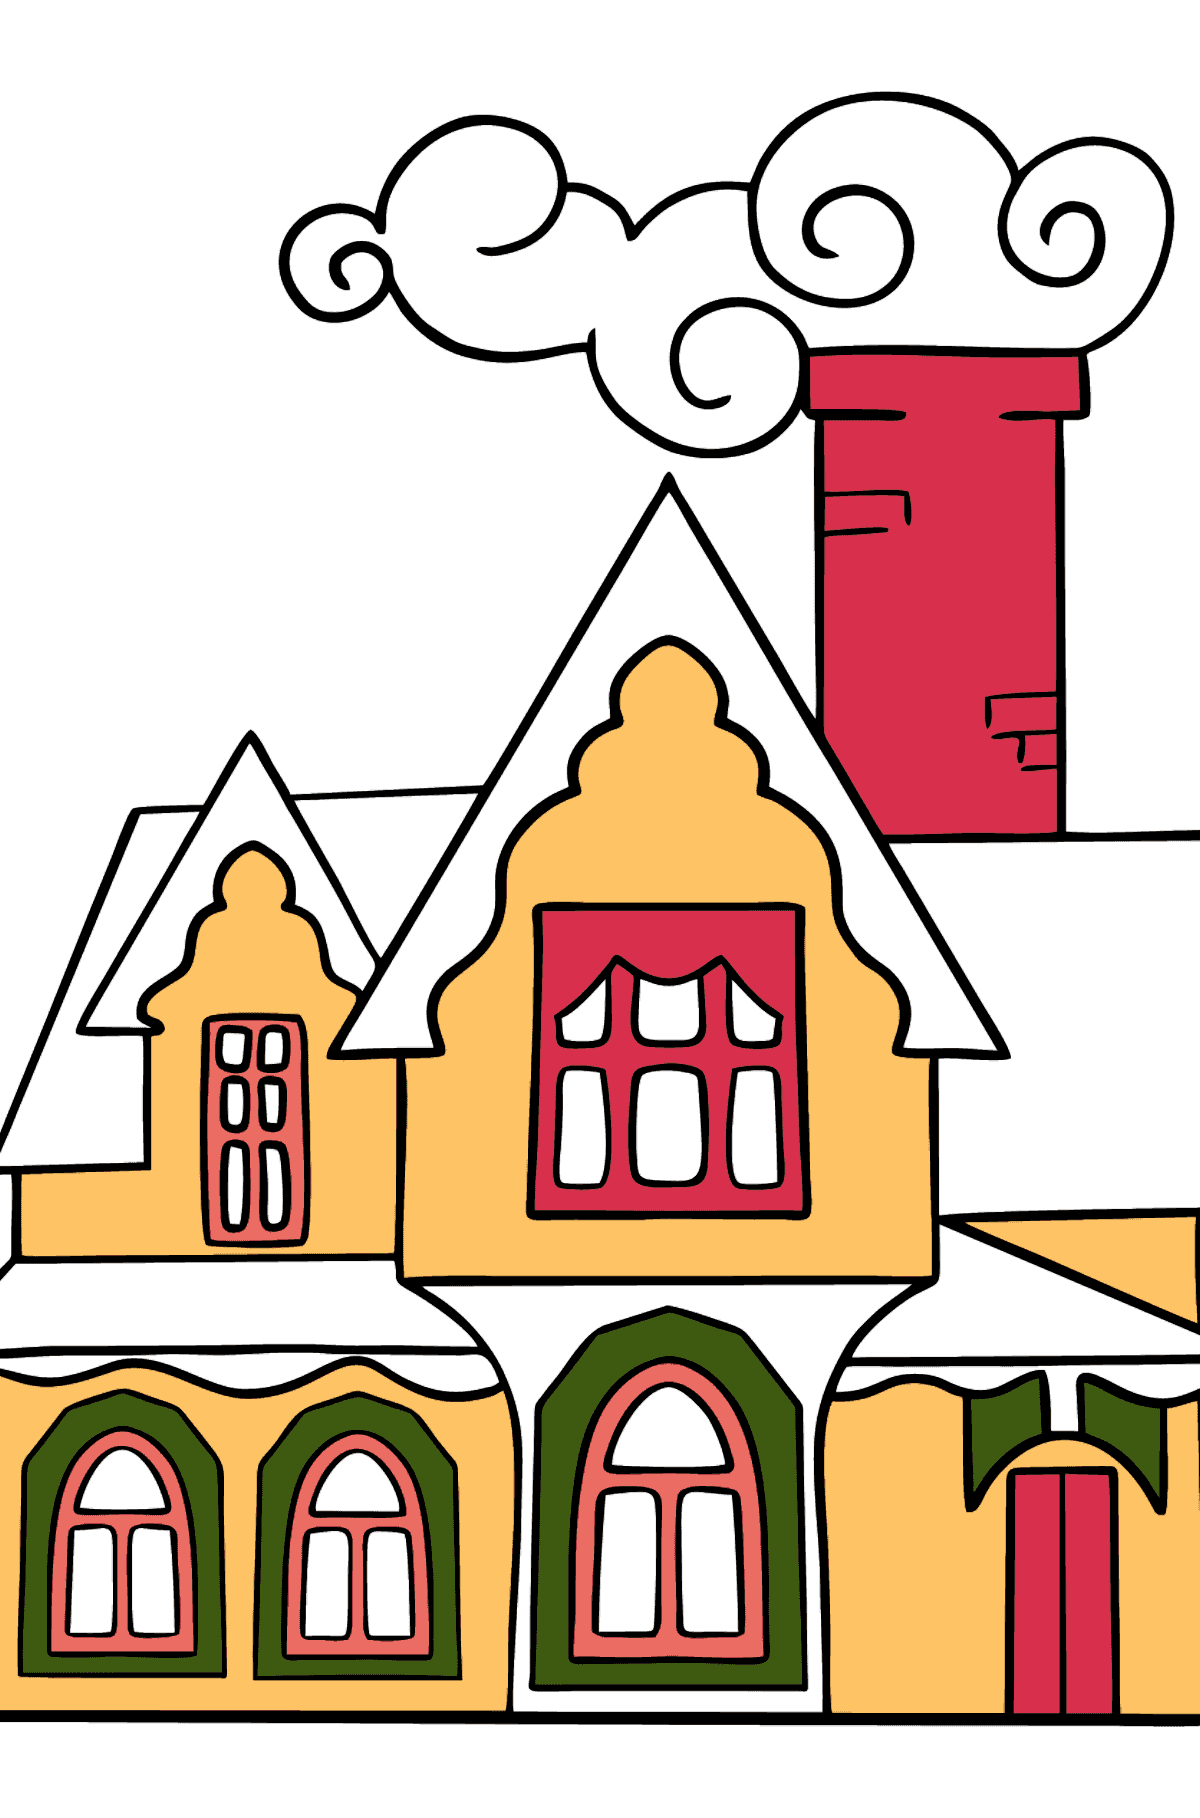 Simple Coloring Page - A Miraculous House - Coloring Pages for Kids